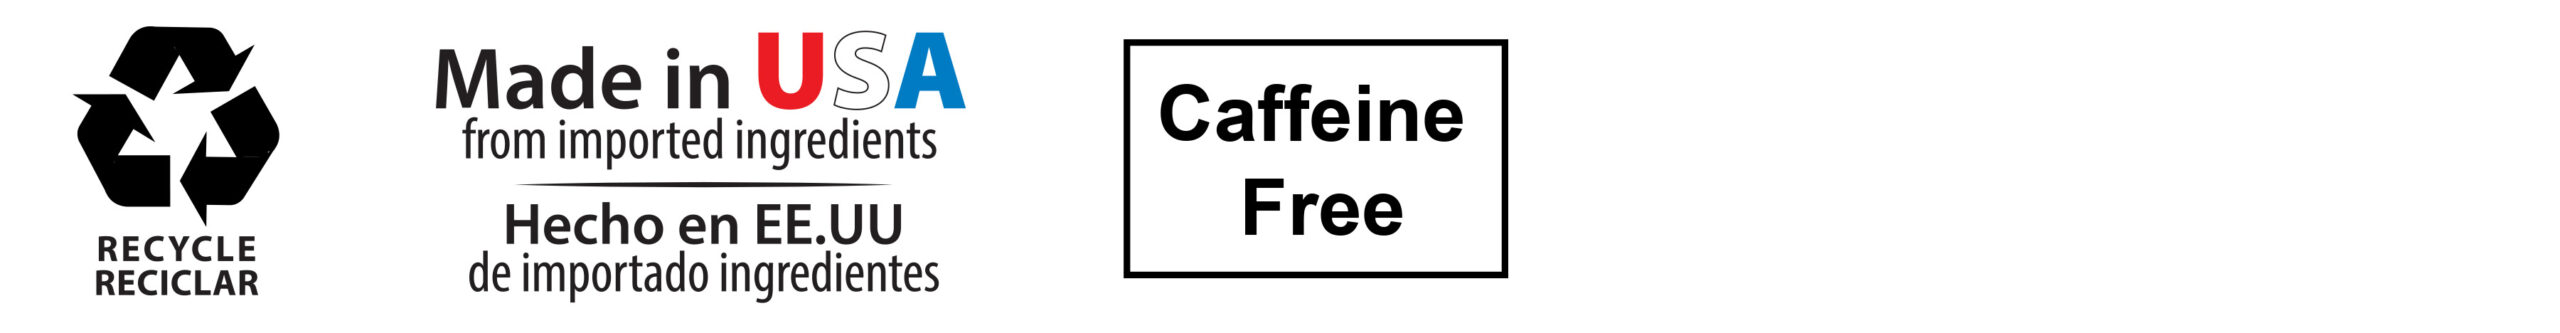 recycle-made in USA-caffeine free